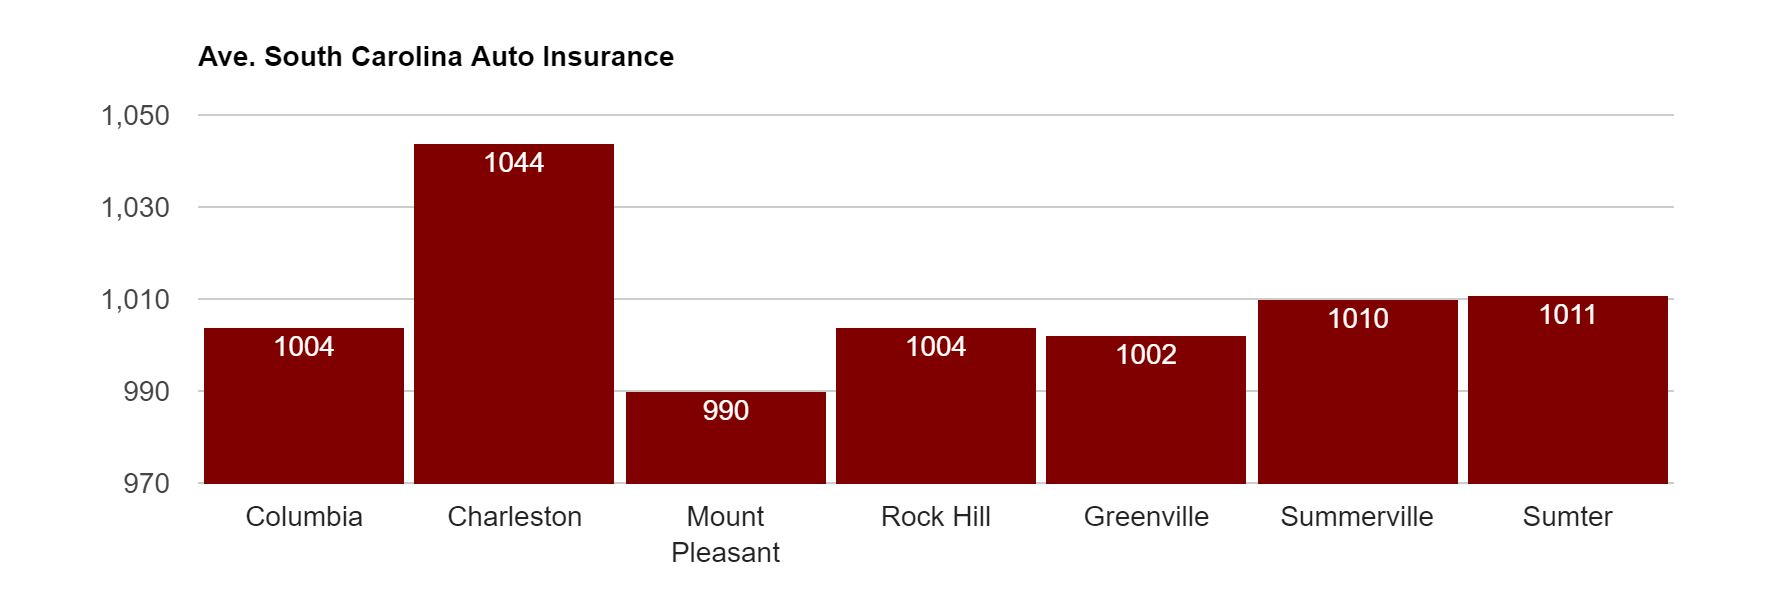 Average South Carolina Auto Insurance